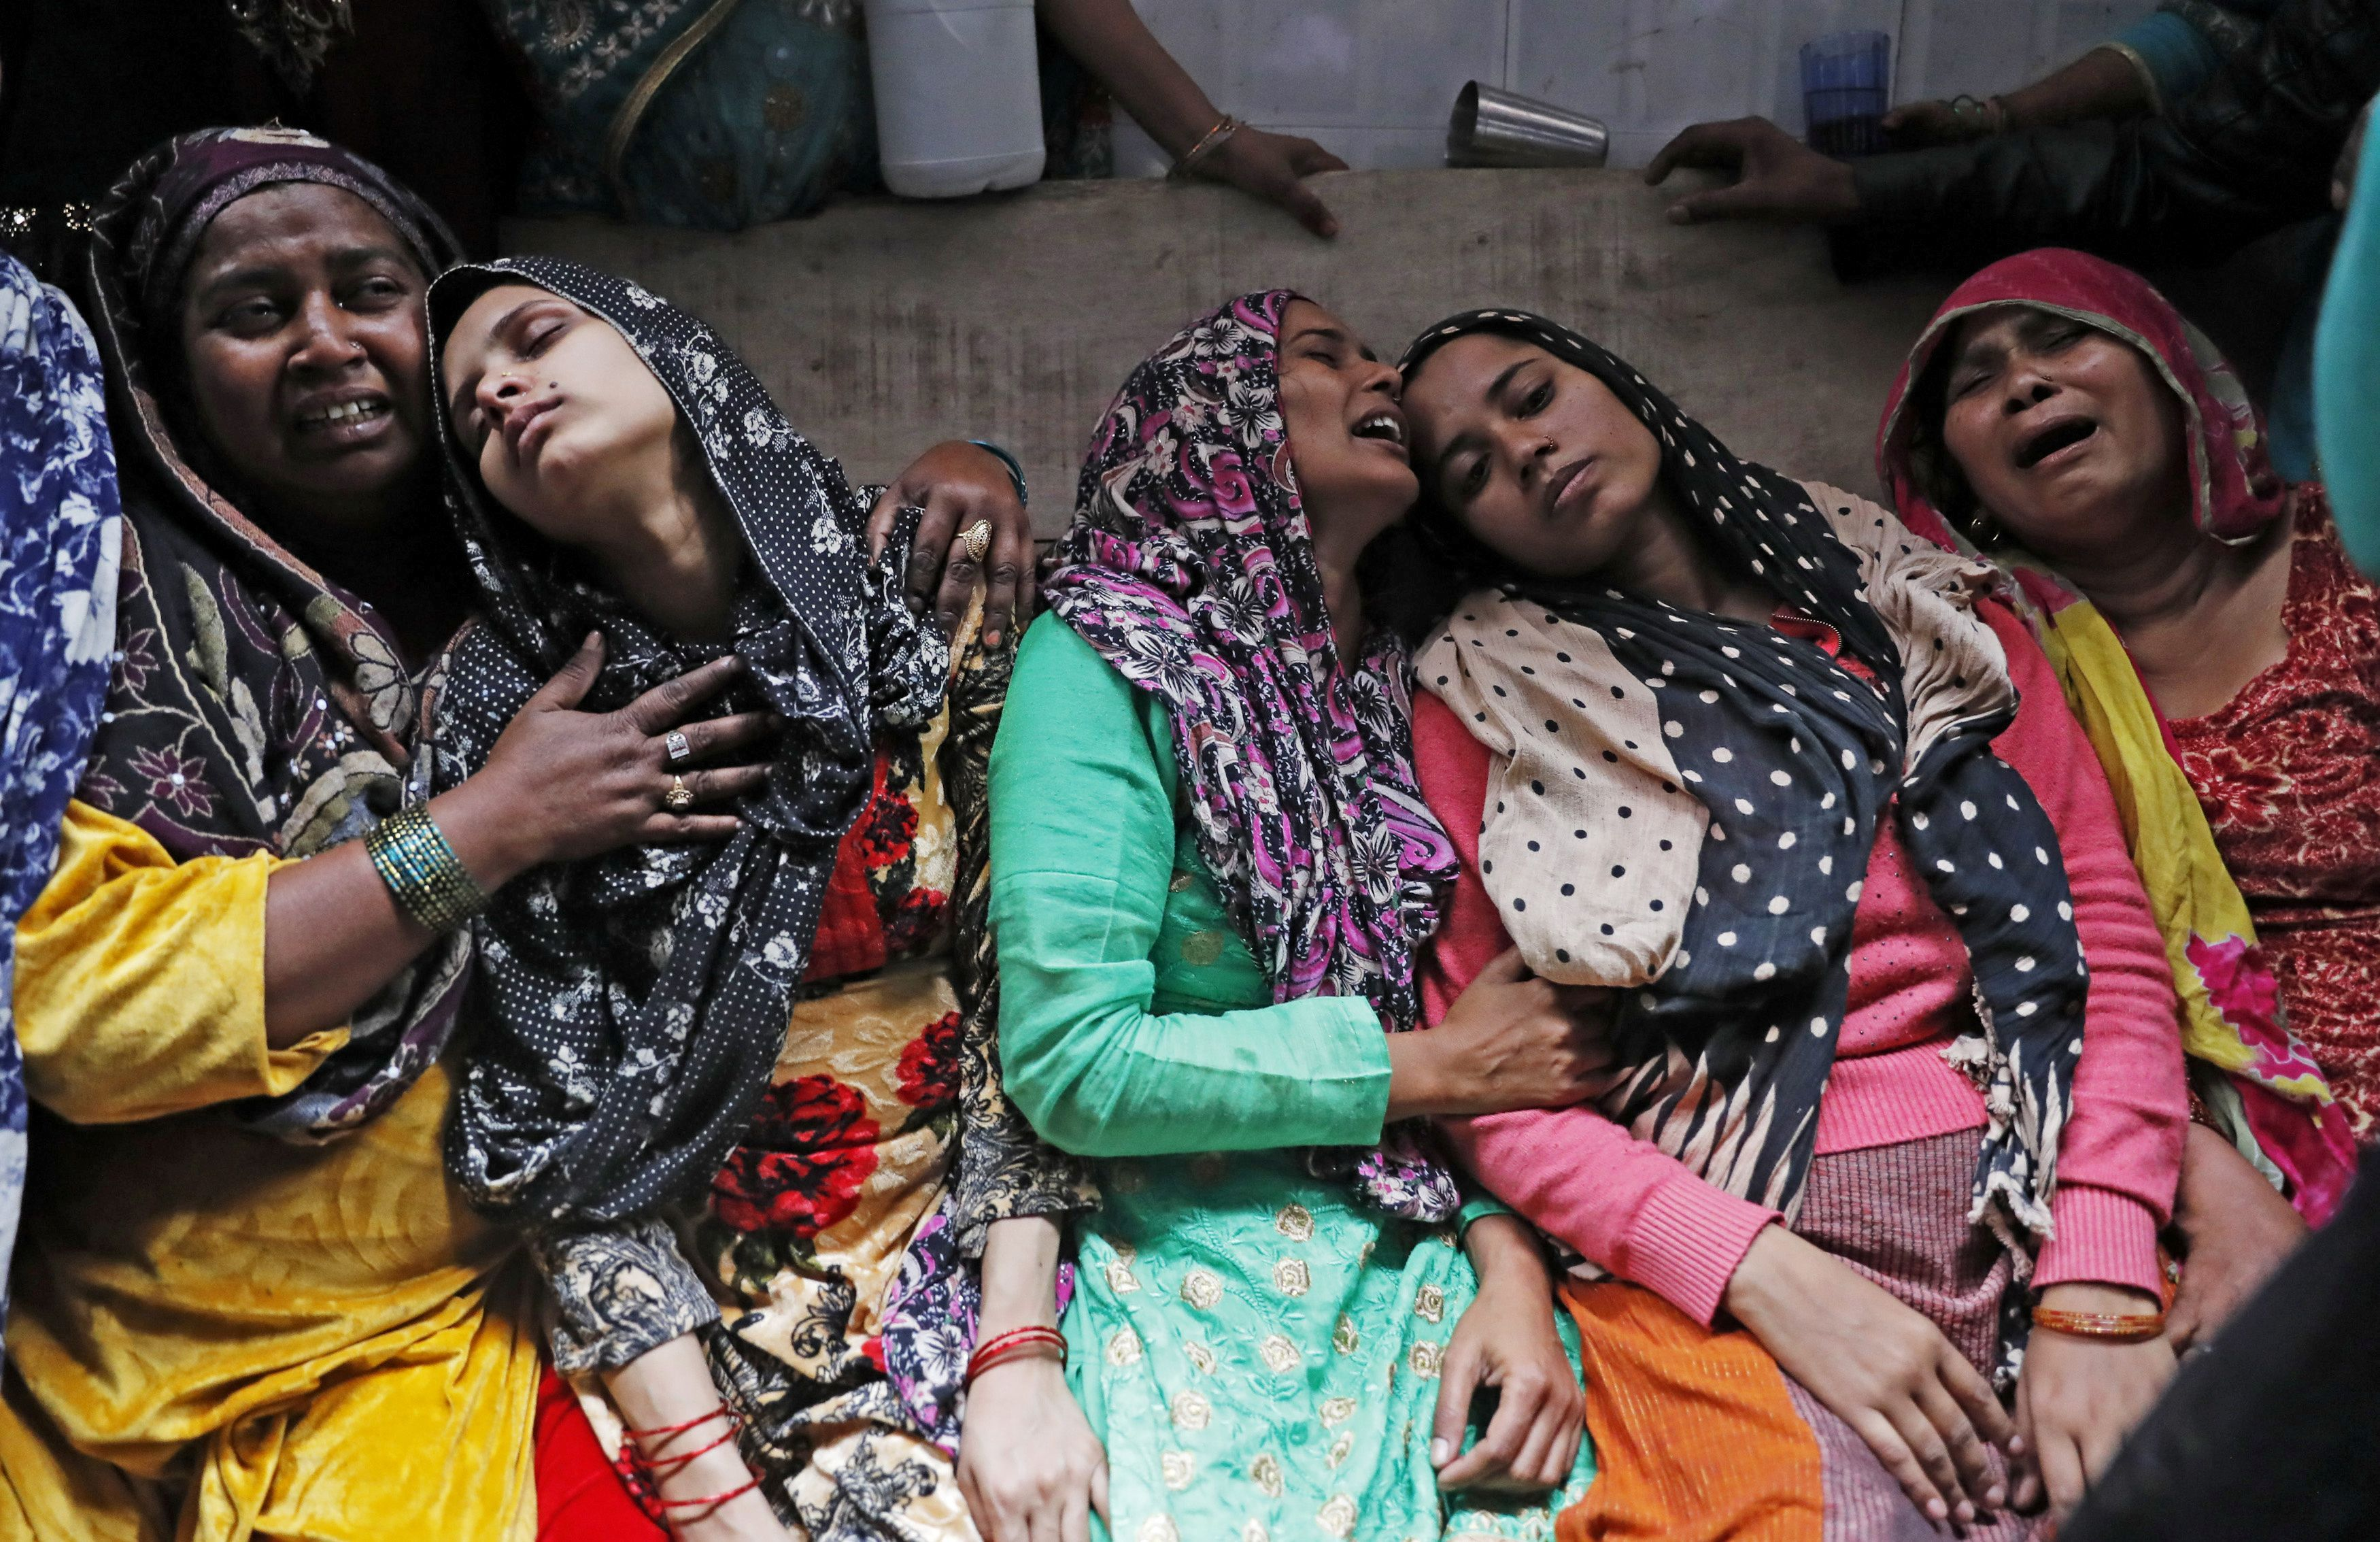 Relatives mourn next to the body of Hashim Ali who succumbed to his injuries, in a riot affected area in New Delhi, India, on 29 February